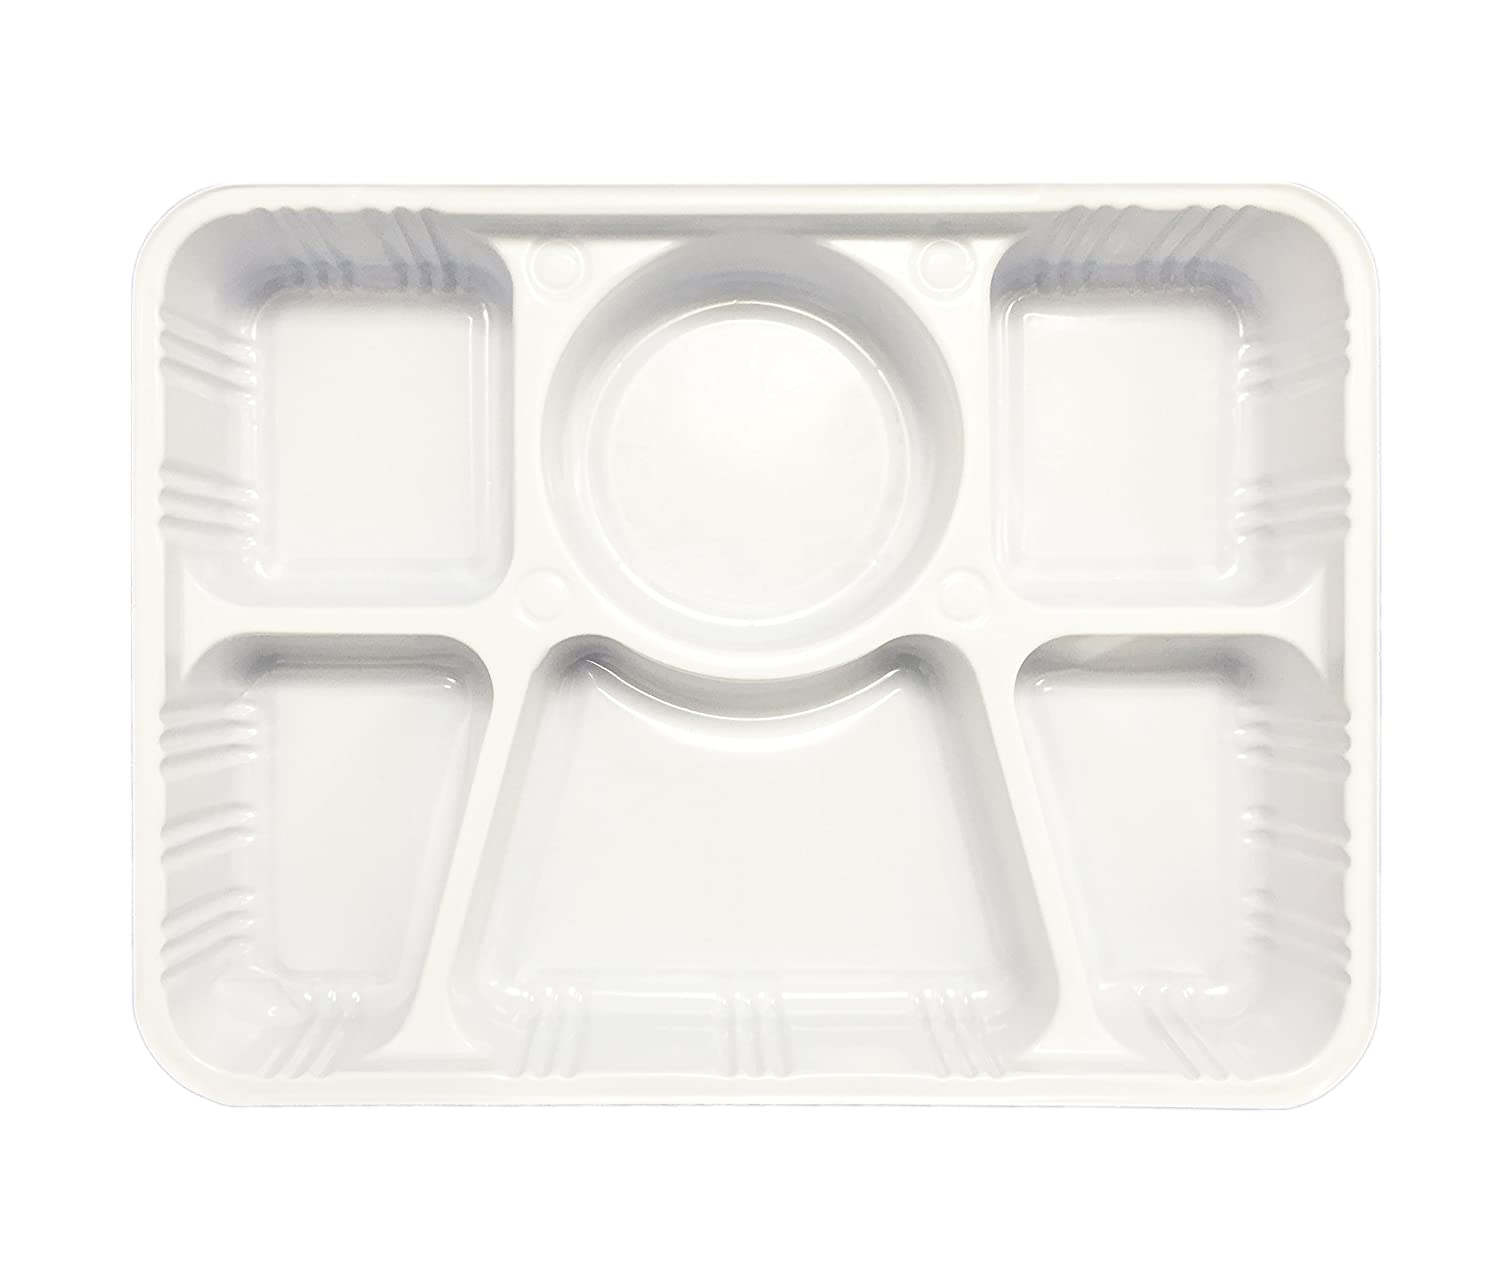 Ekarro 6 Compartment Plastic Plate White by Ekarro: Amazon.ca: Home ...